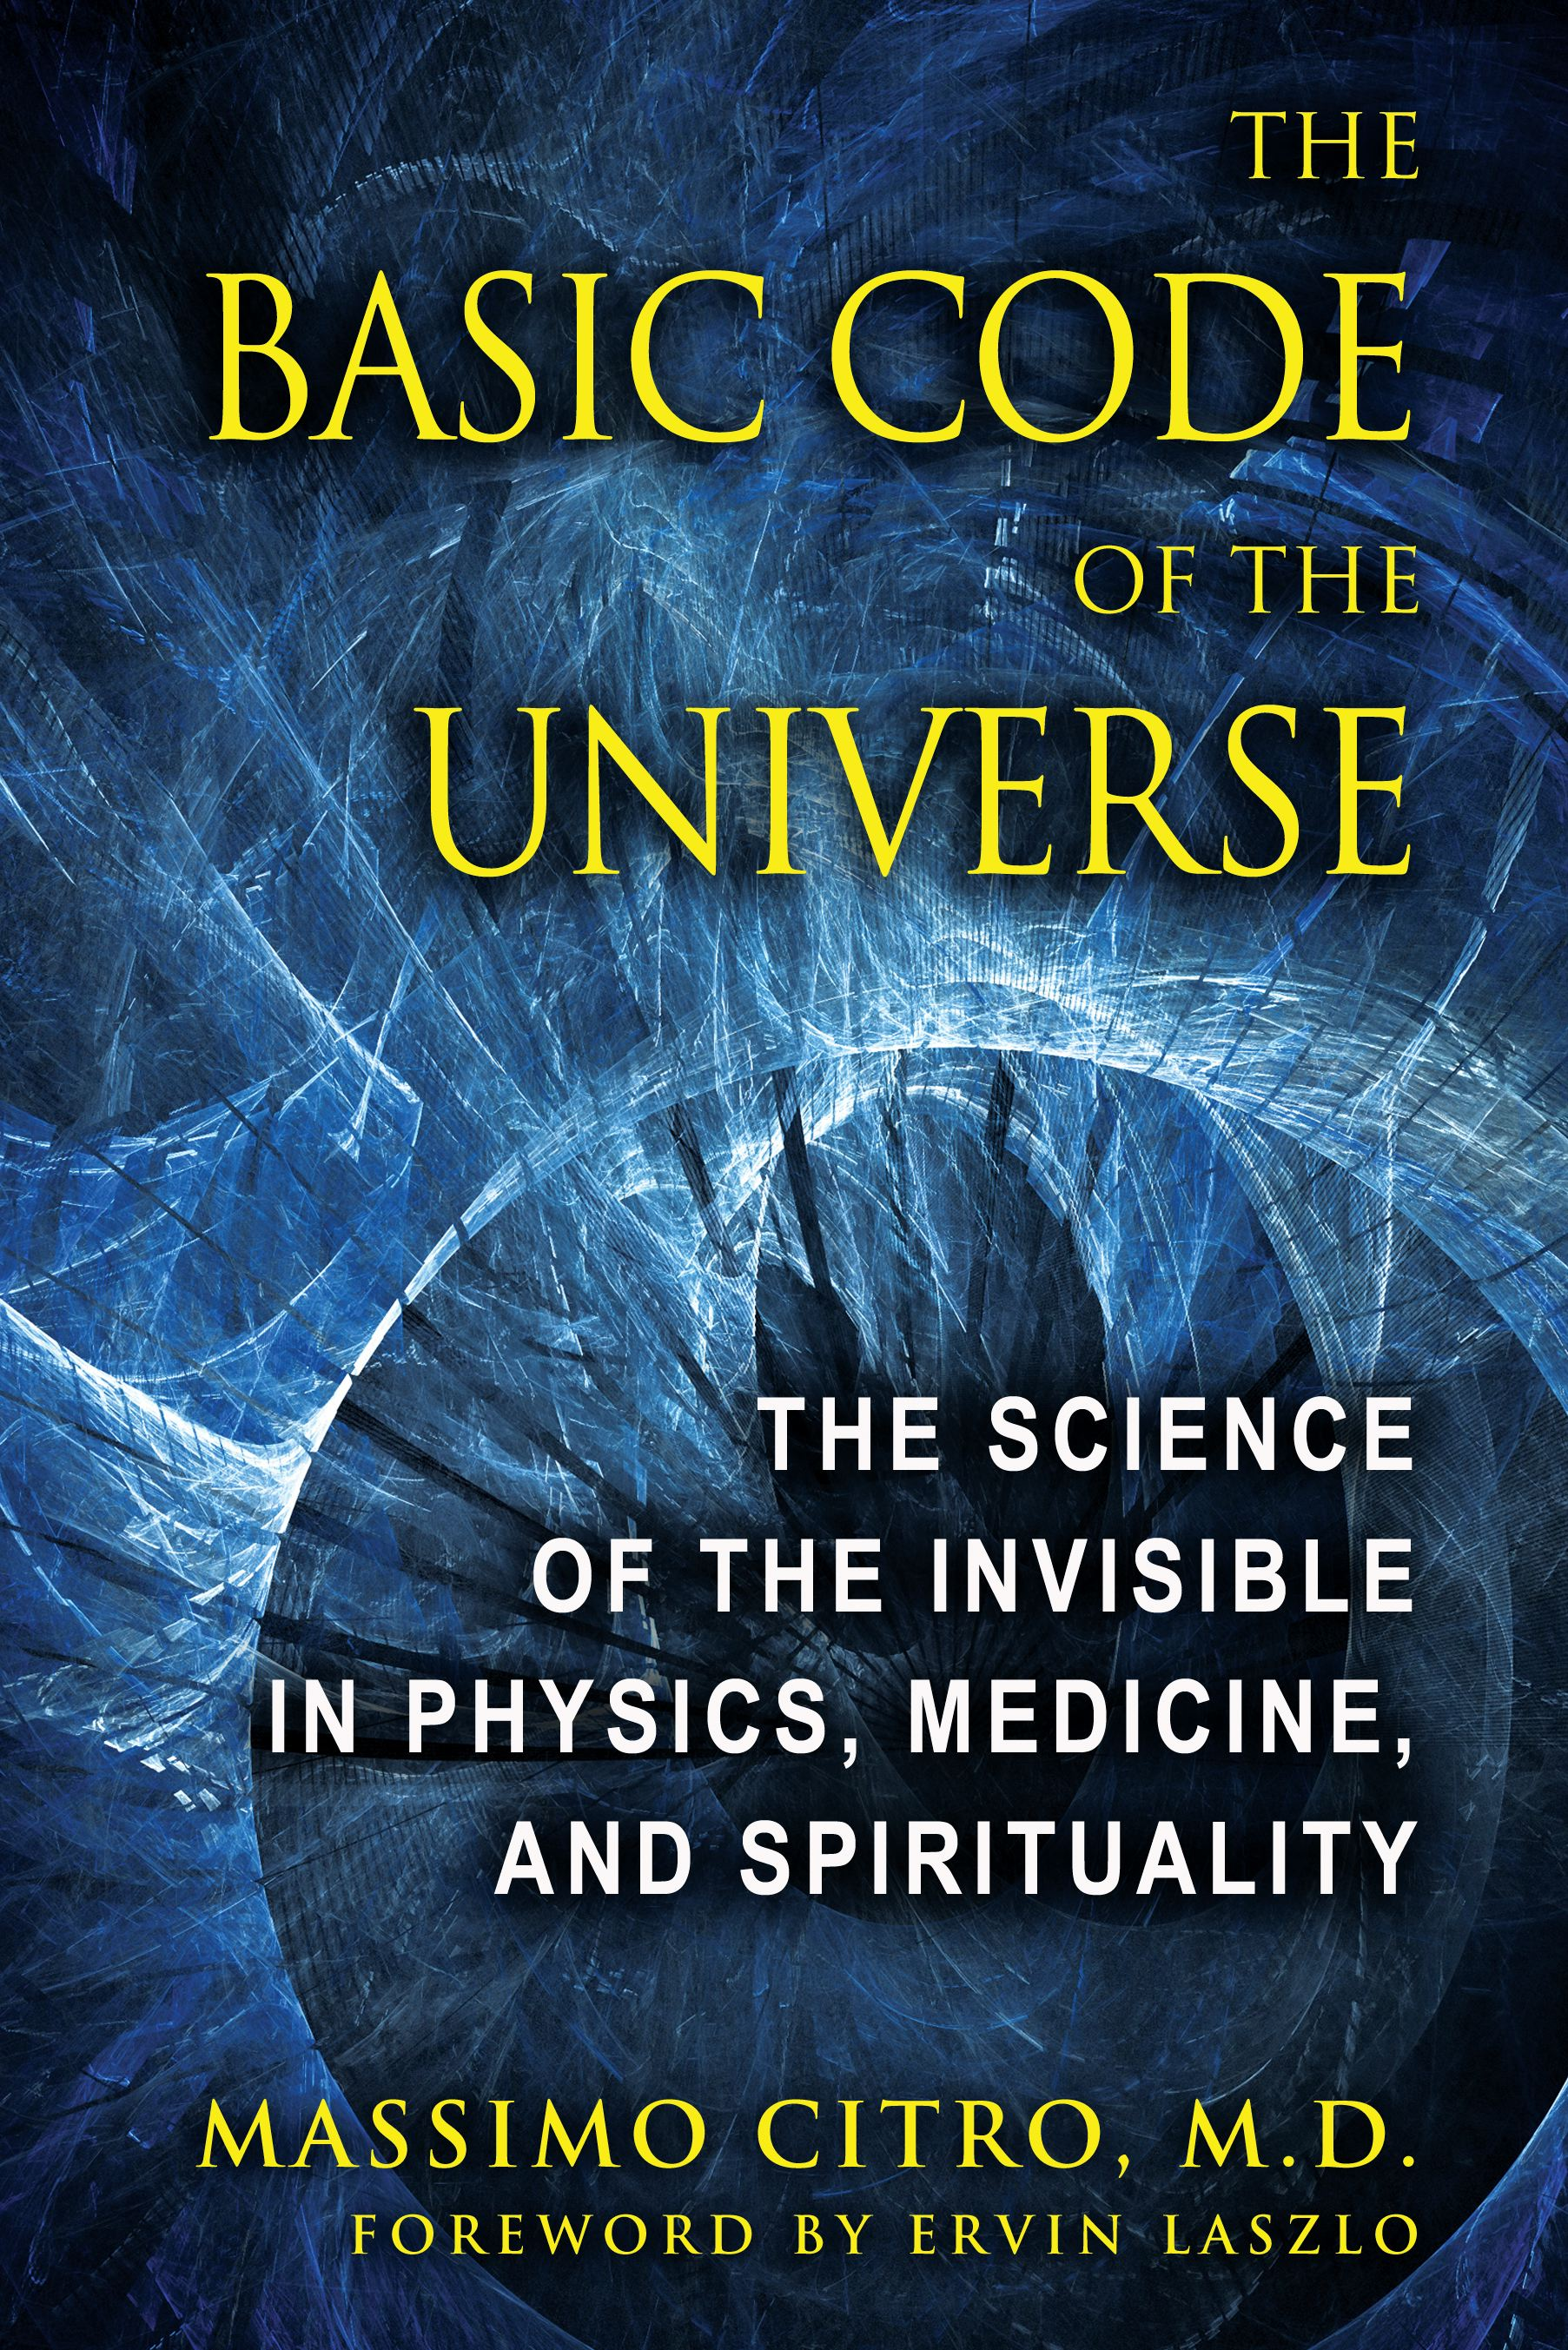 The basic code of the universe 9781594773914 hr